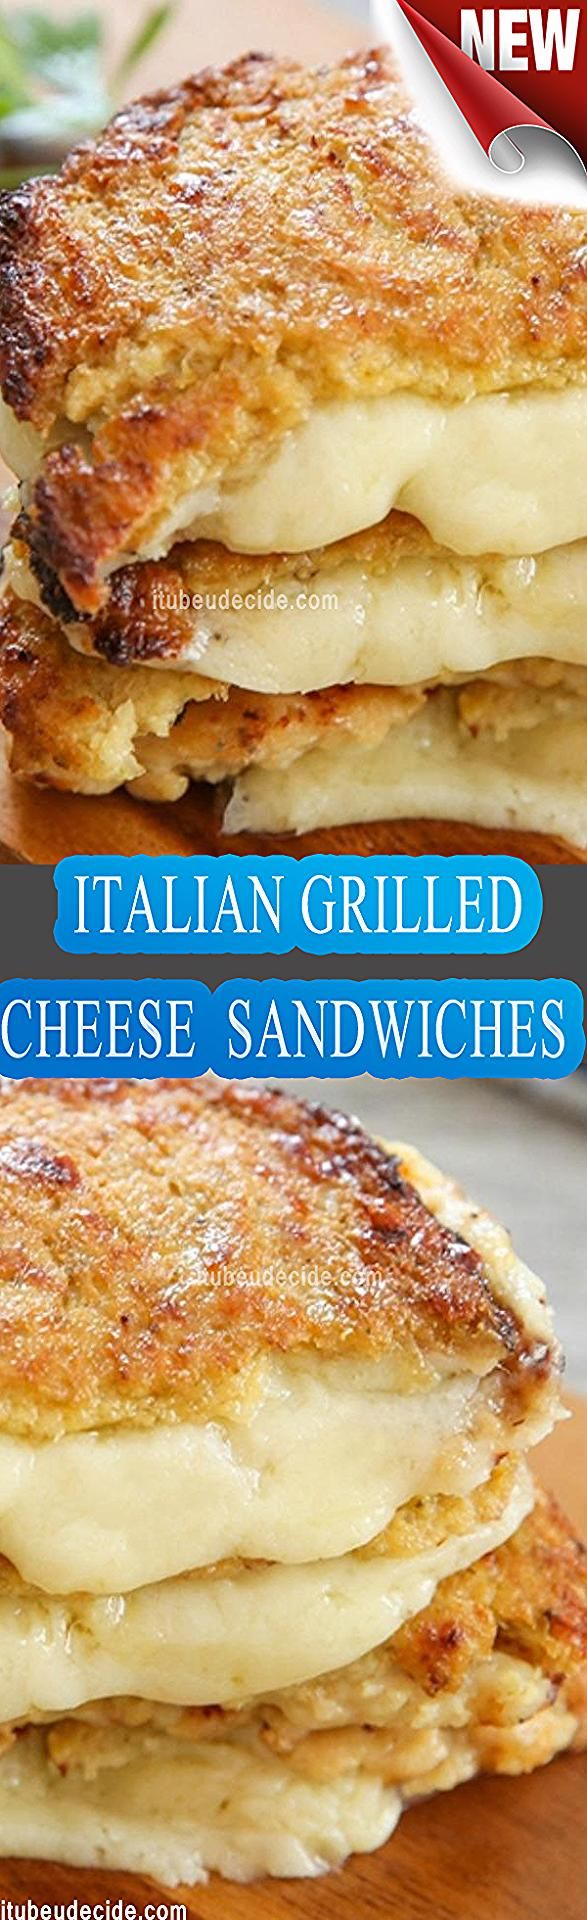 Epic ITALIAN GRILLED SANDWICHES The classic Italian sub is one of my favorite sandwiches but a good